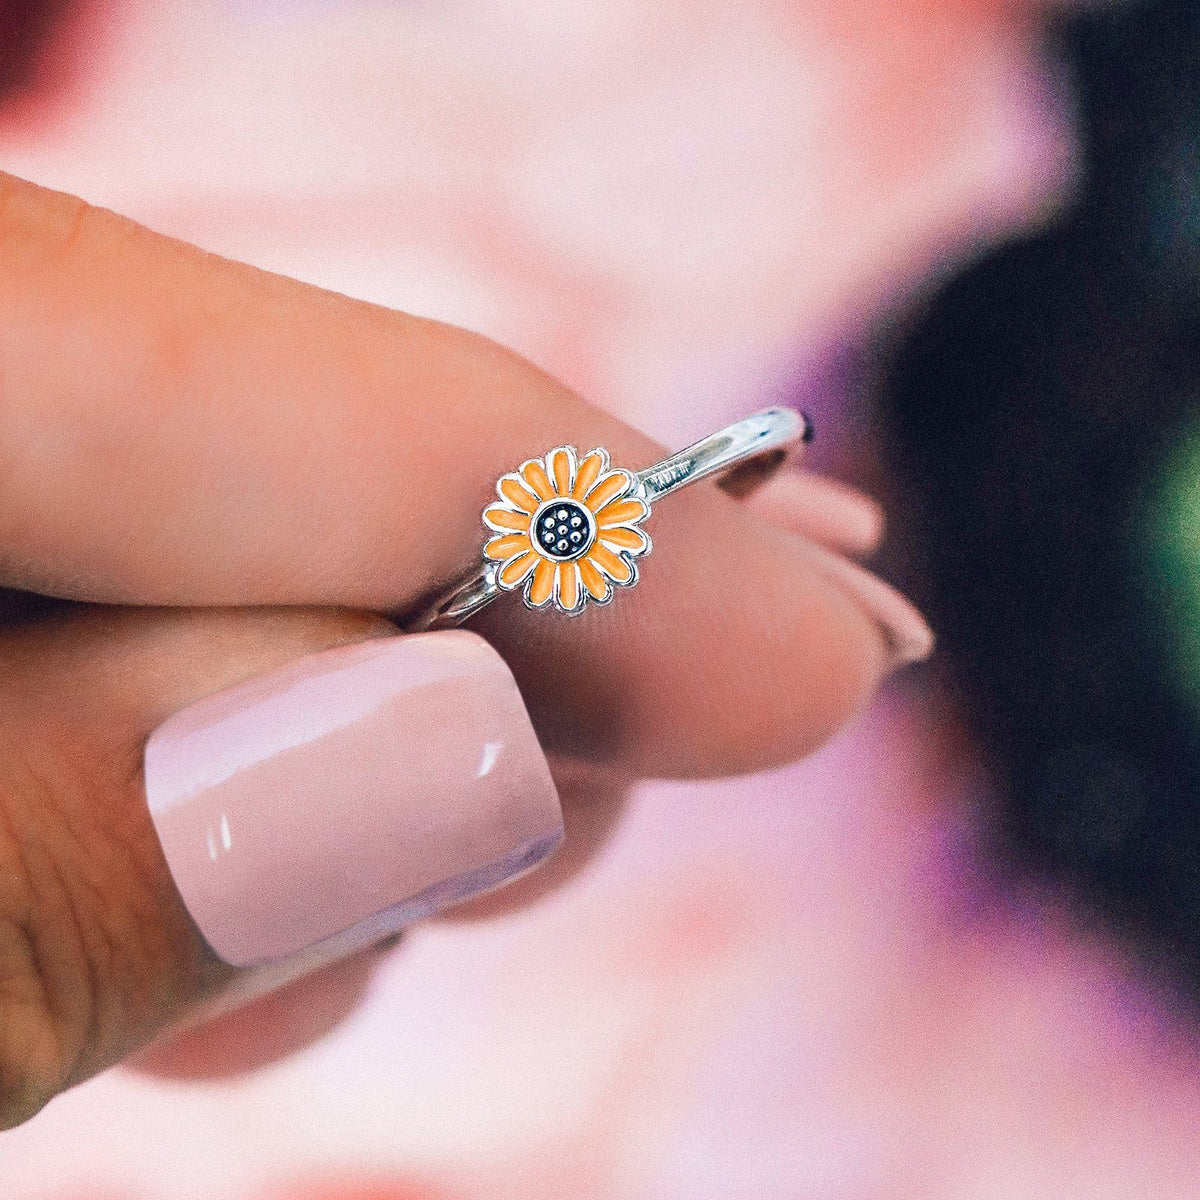 Enamel Sunflower Ring 4